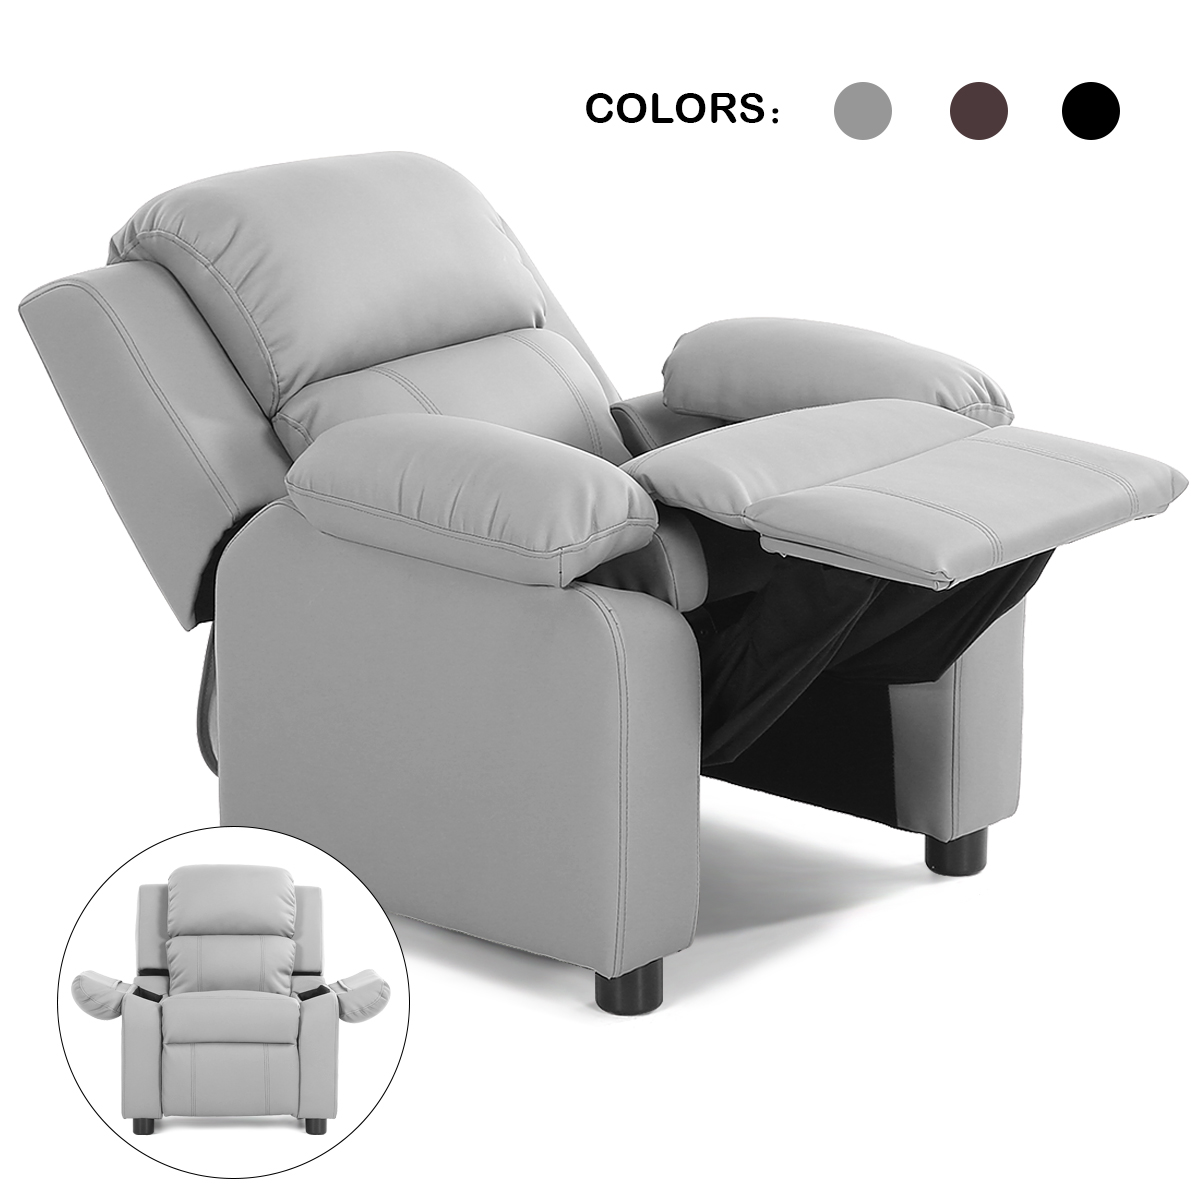 Deluxe Padded Kids Sofa Armchair Recliner Headrest Children W/ Storage Arms Gray